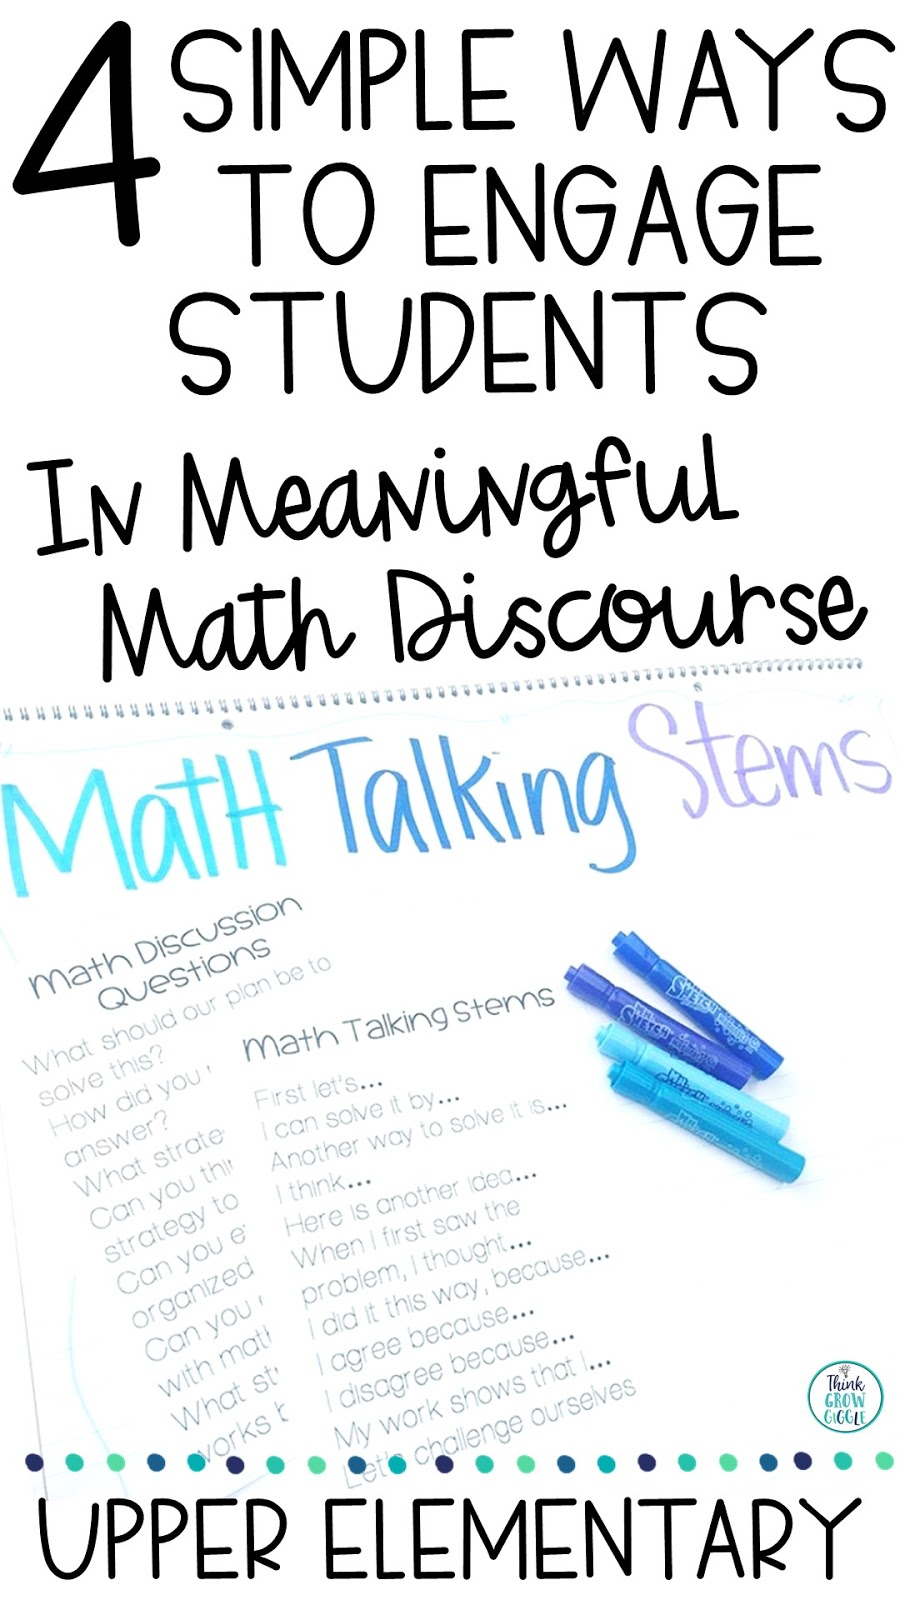 medium resolution of 4 Simple Ways to Engage Students in Meaningful Mathematical Discourse -  Think Grow Giggle